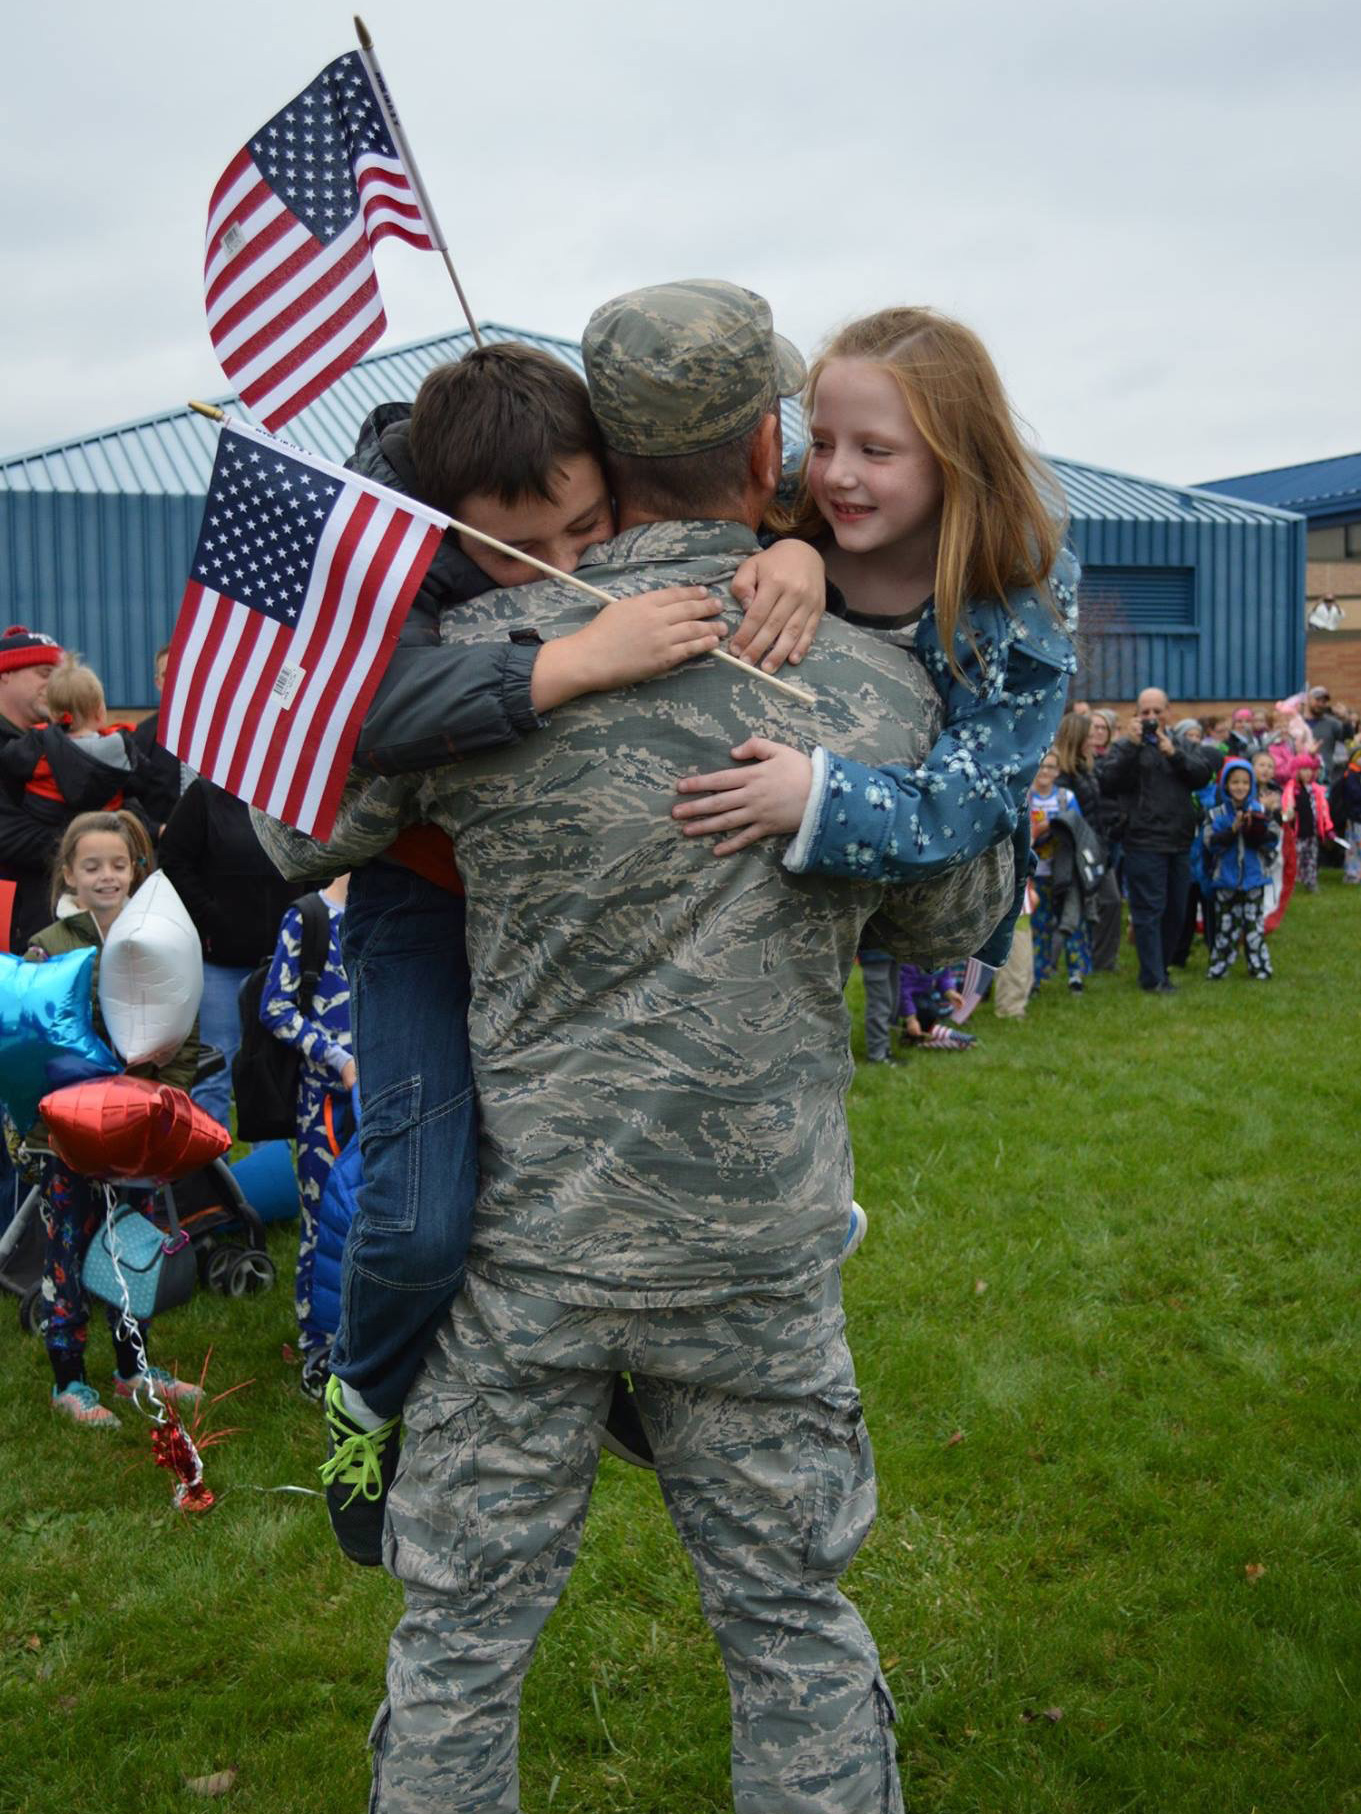 Military dad and kids embrace in surprise reunion at CE